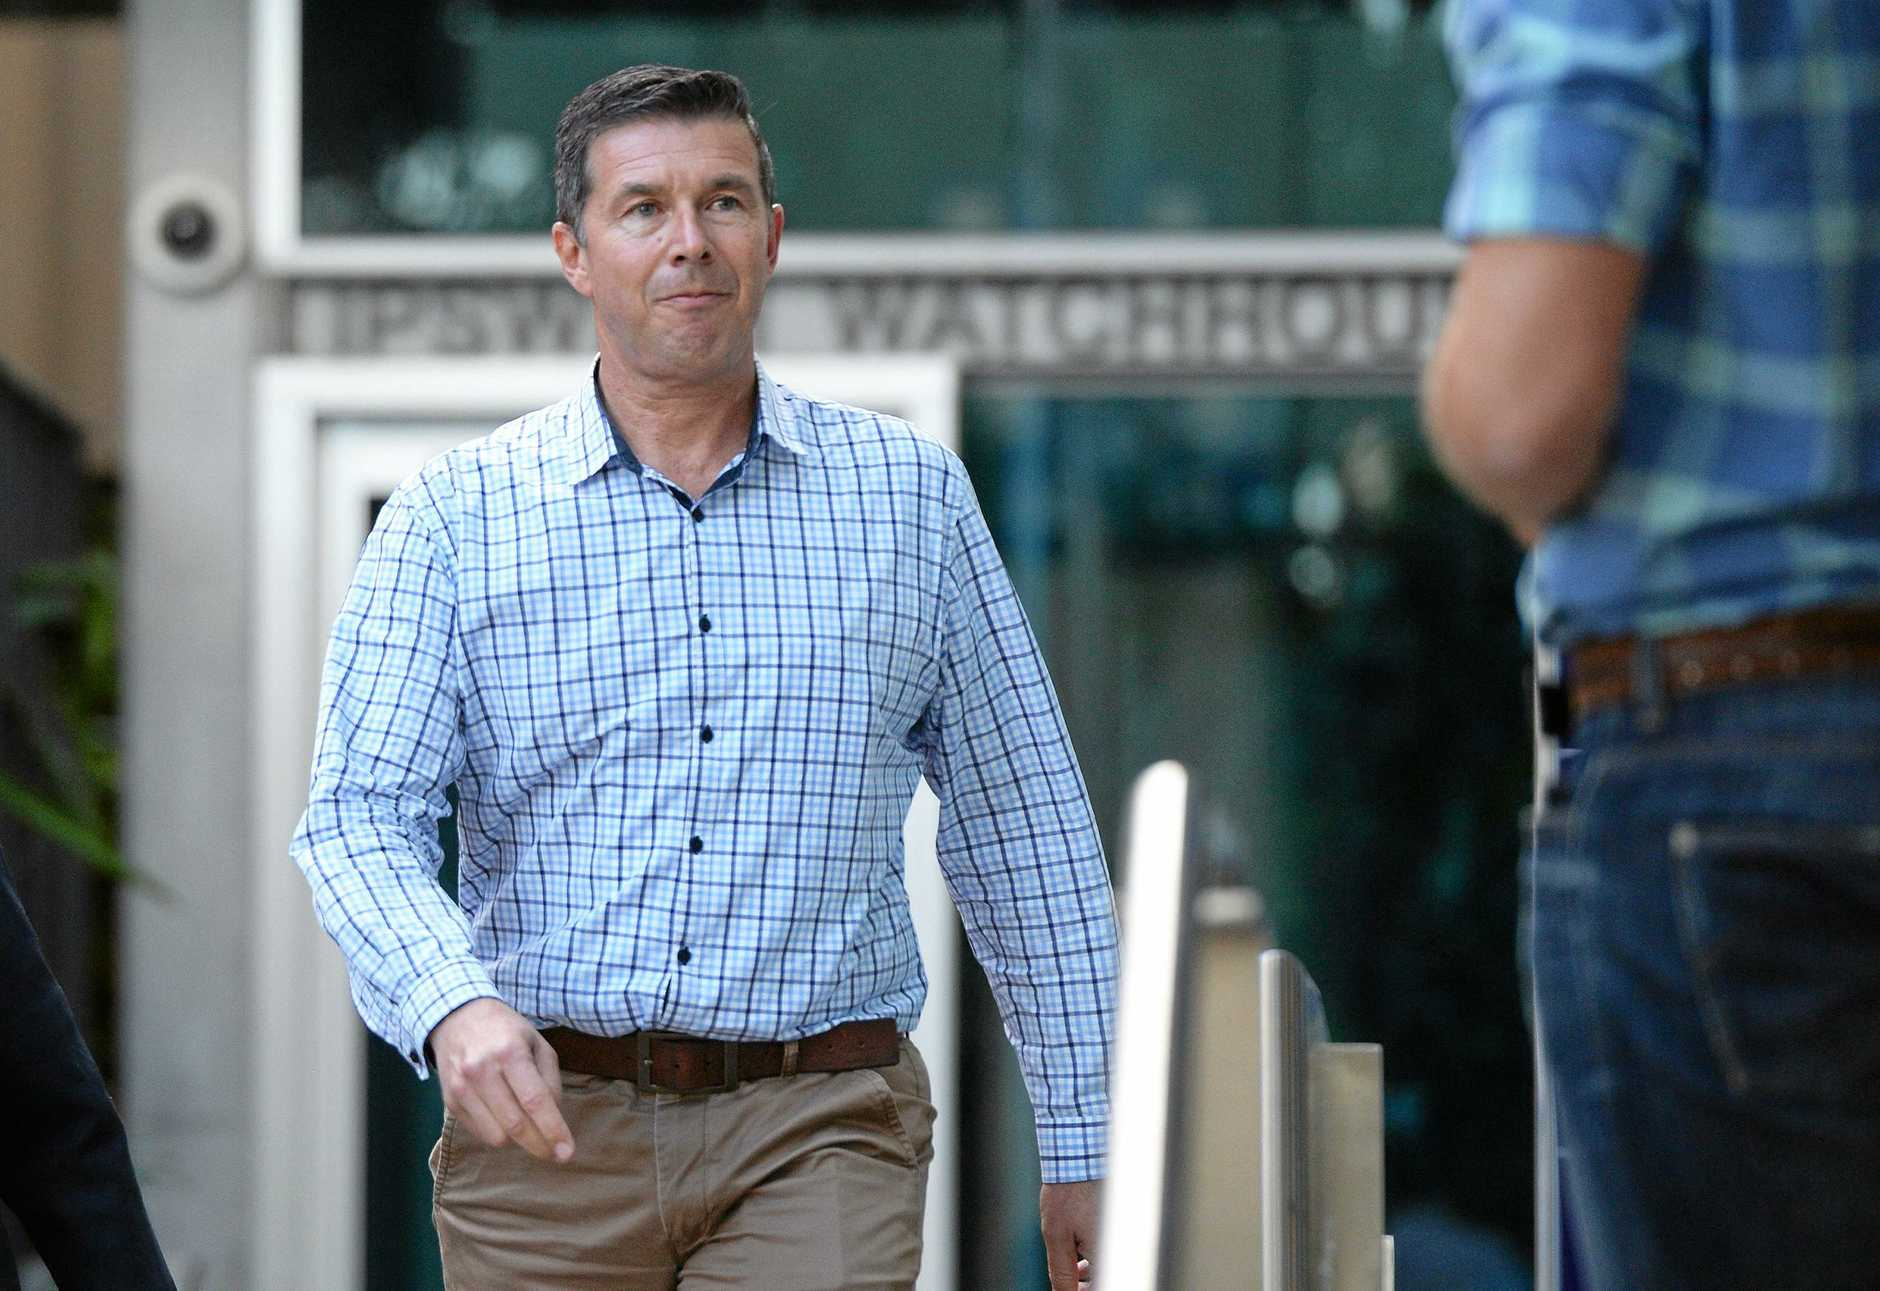 Ipswich Mayor Andrew Antoniolli leaves the Ipswich Watchouse on Wednesday afternoon.